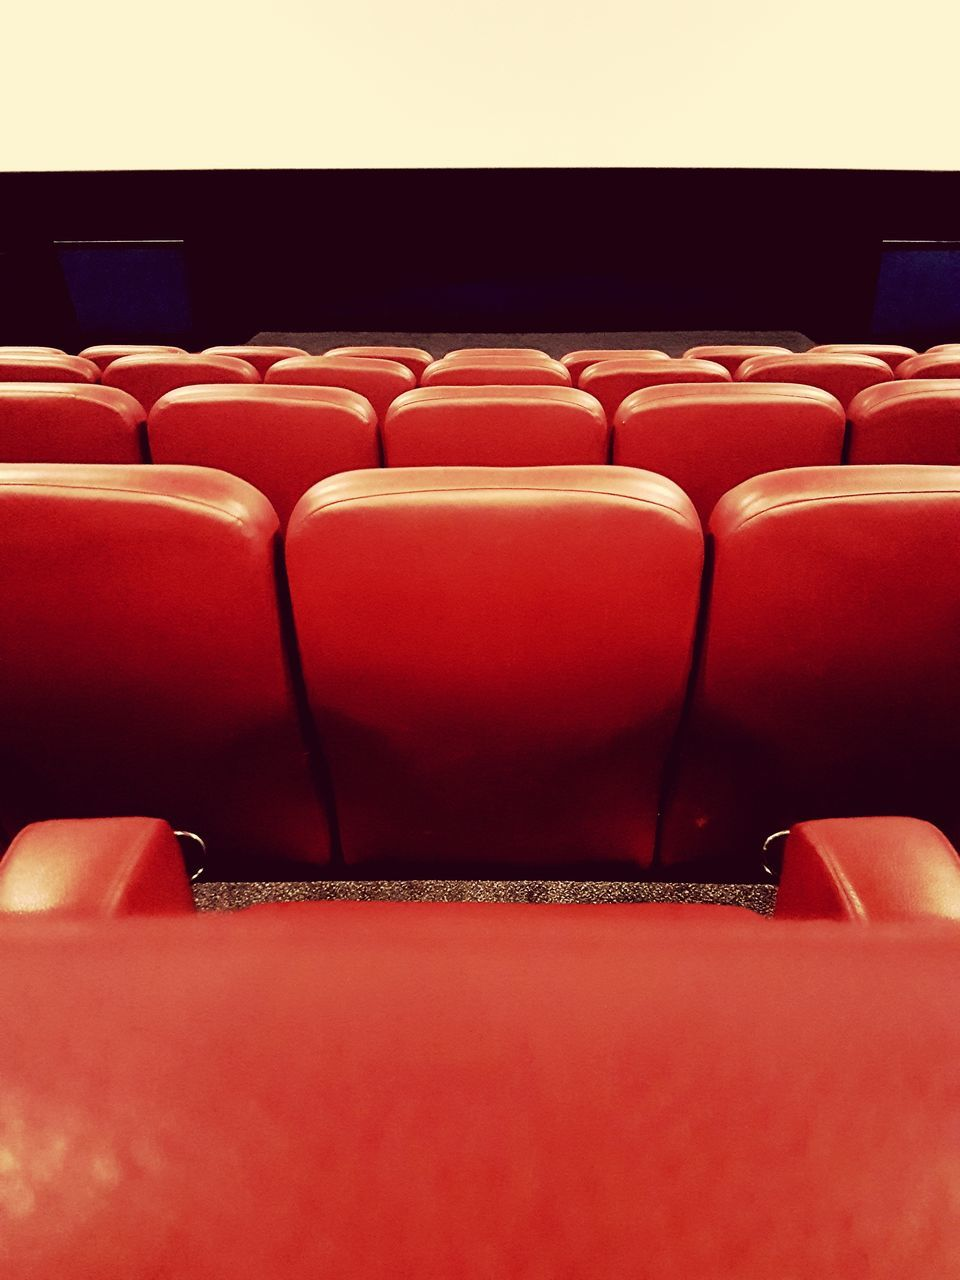 in a row, empty, seat, red, indoors, absence, arts culture and entertainment, chair, no people, movie theater, auditorium, backgrounds, film industry, day